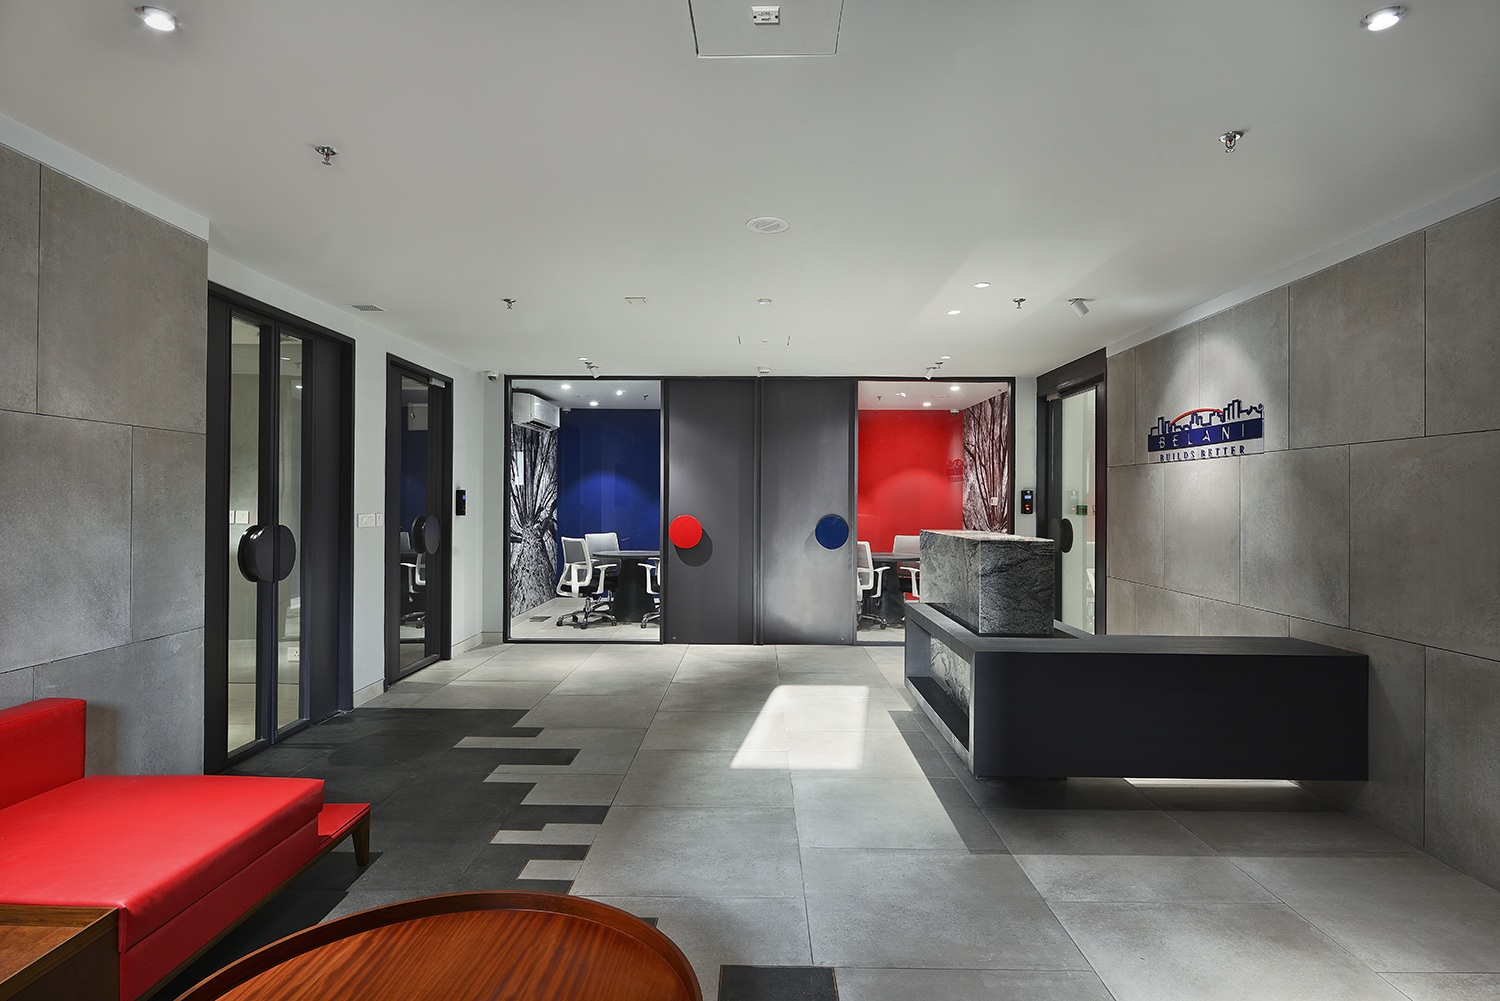 Accents of Blue and Red mirror the company's brand Ravi Kanade